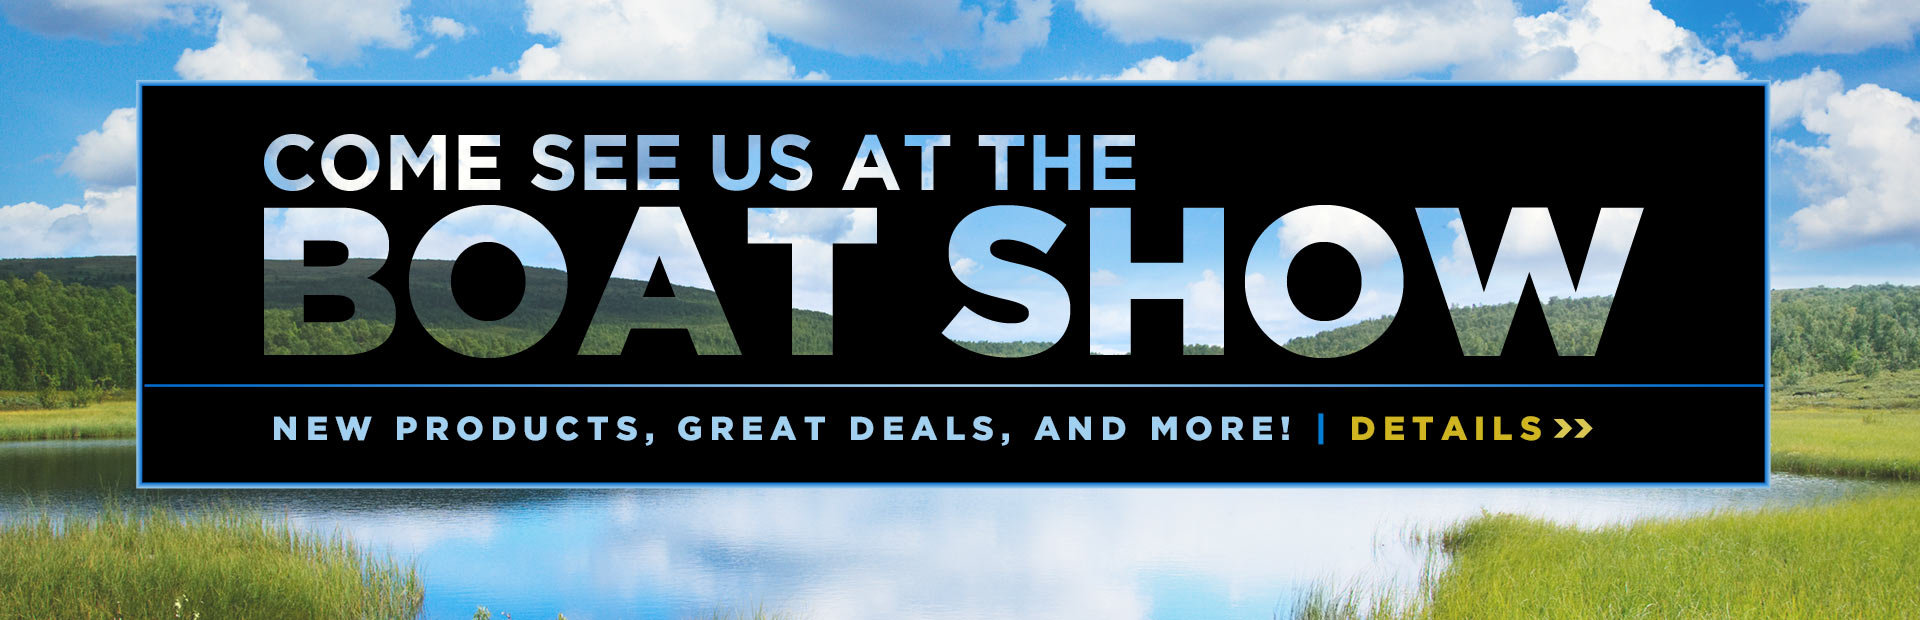 Come see us at the boat shows! Click here for details.